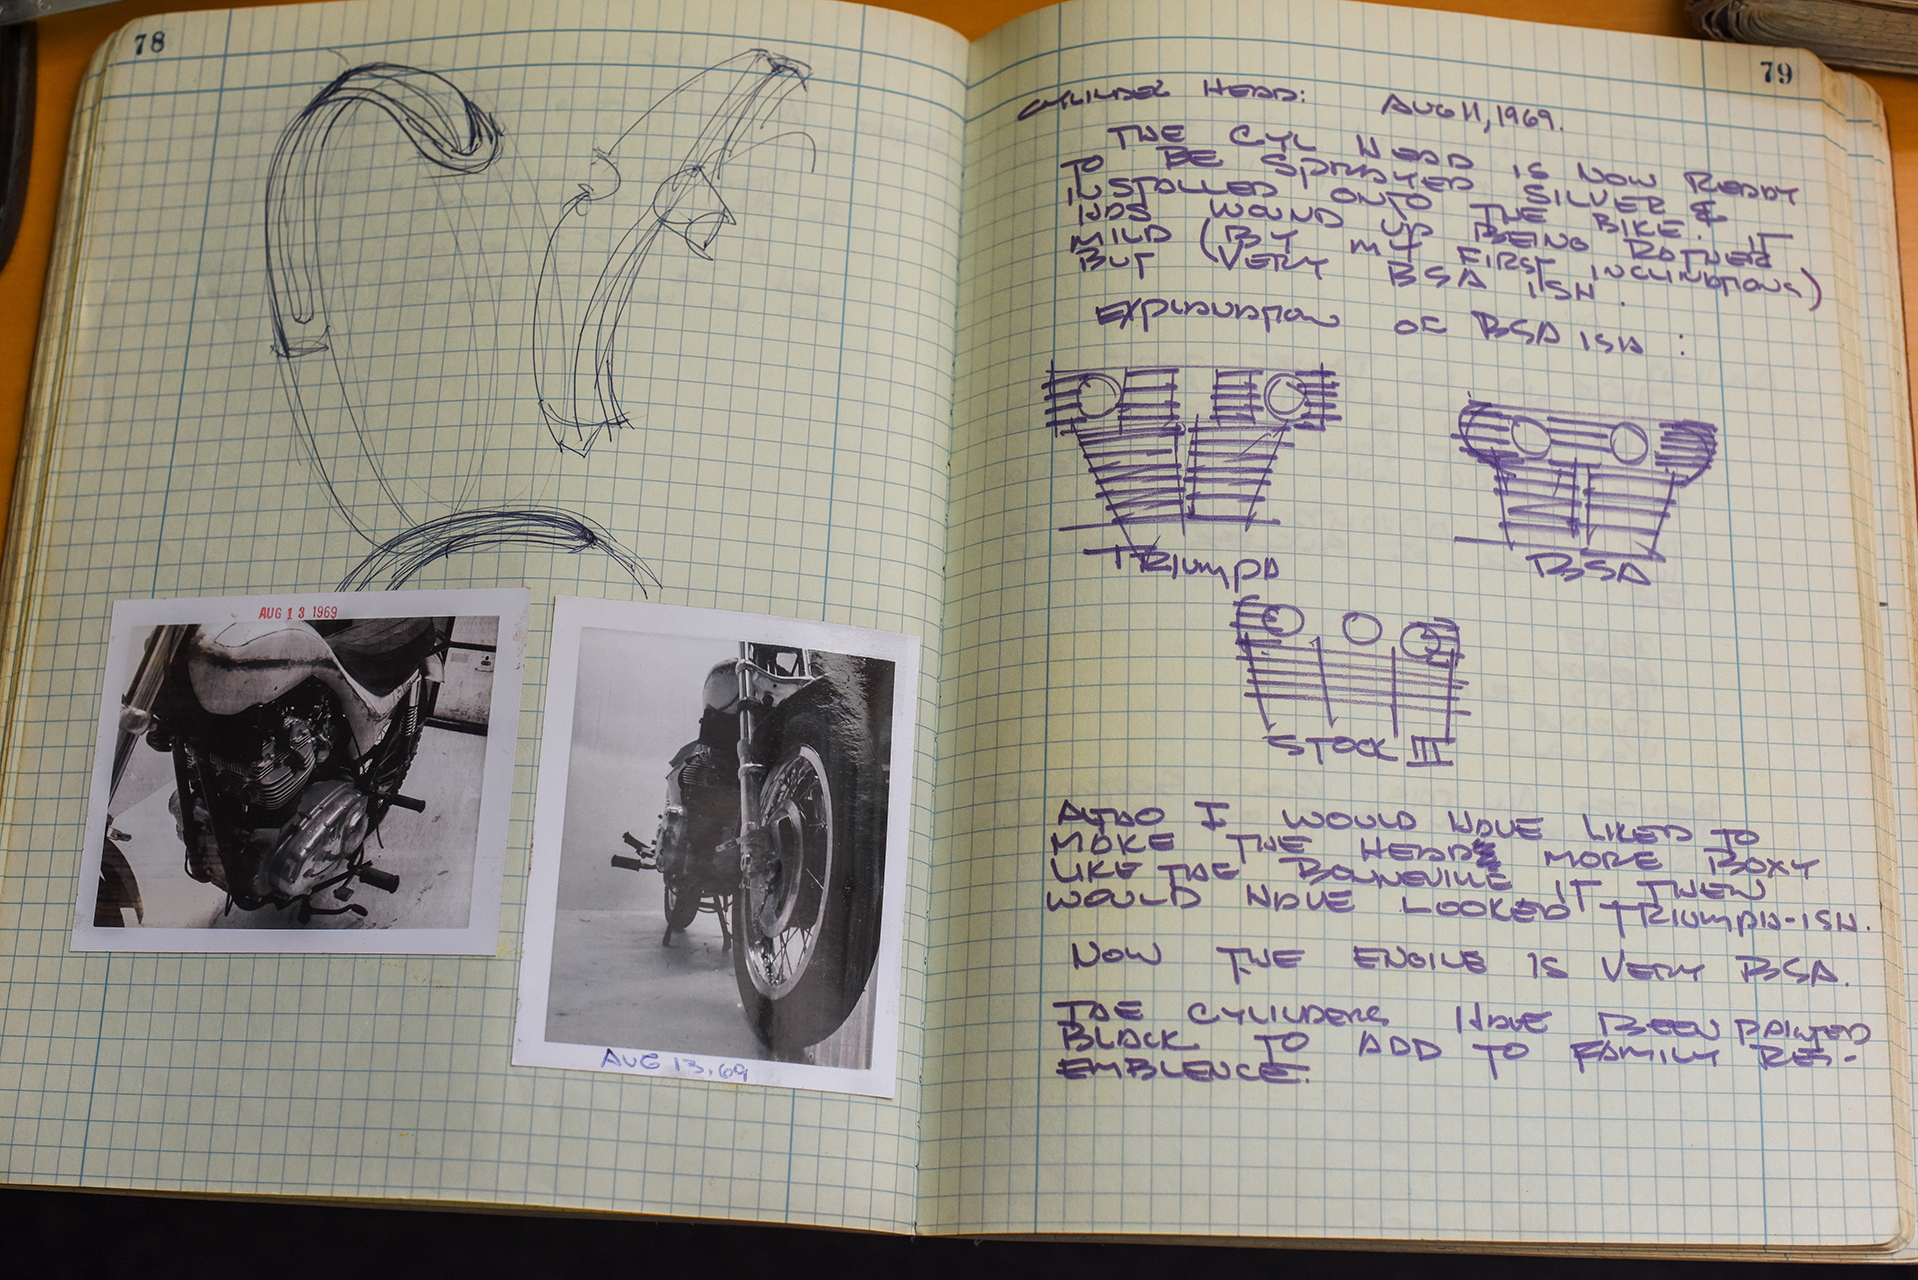 Vetter even looked at re-doing the finning on the cylinder to compliment the look of the bike.